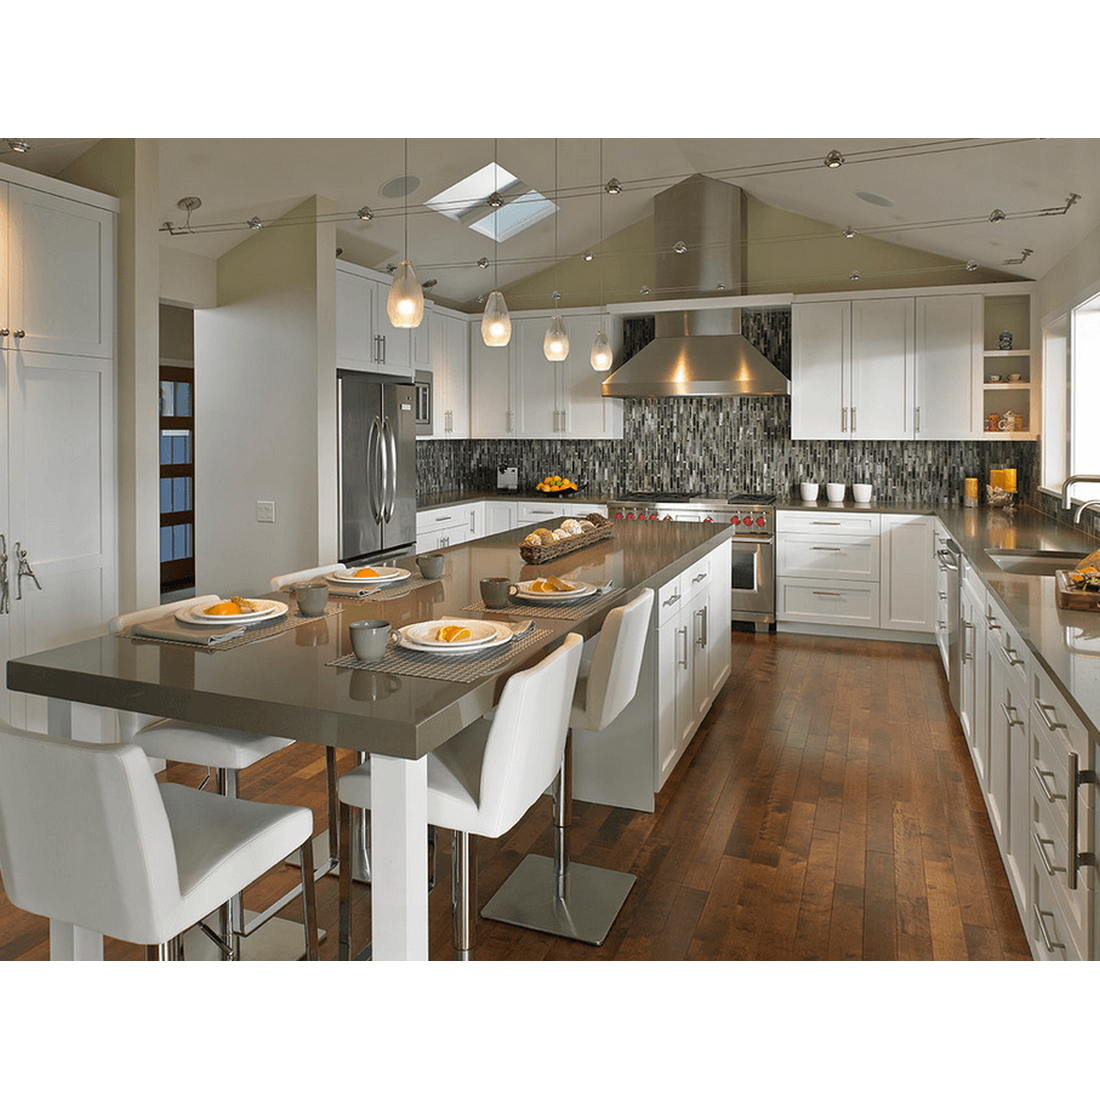 Kitchen Island That Connected With Dining Table Yay Or Nay Rumahkukitchen Kitchen Island With Bench Seating Modern Kitchen Island Narrow Kitchen Island